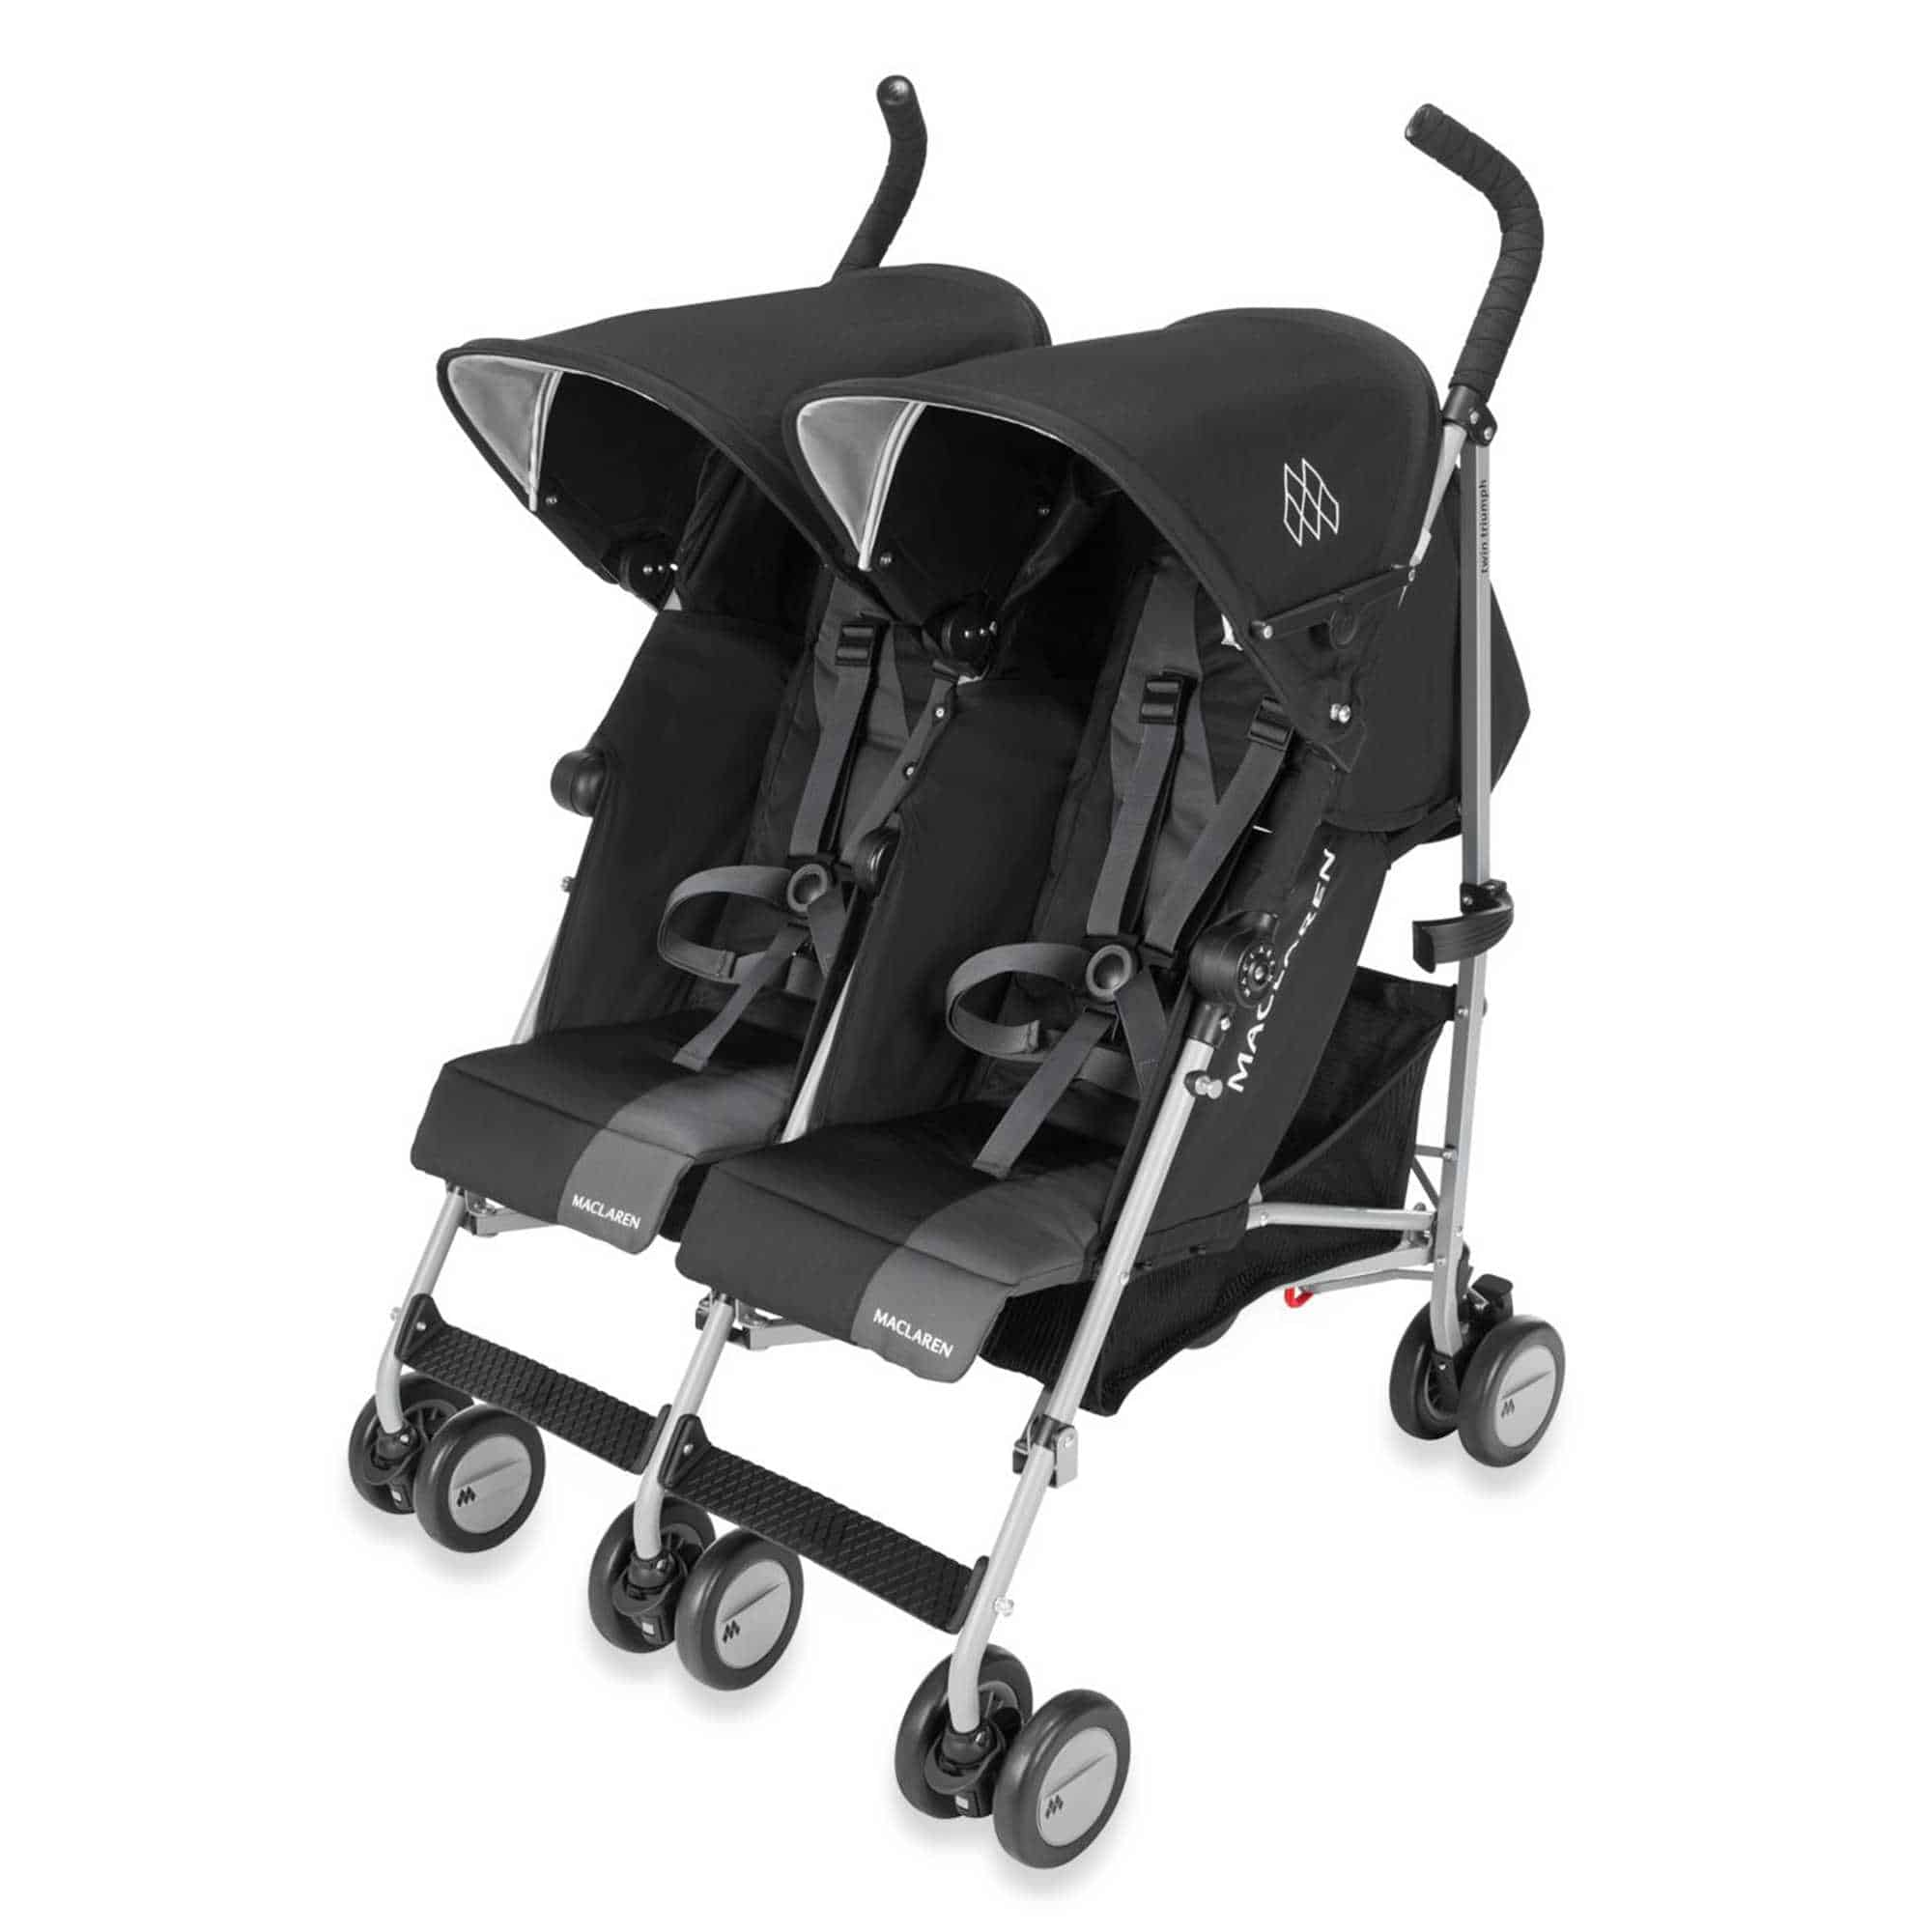 Peg Perego Stroller For Twins The Definitive Best Double Stroller List Of 2019